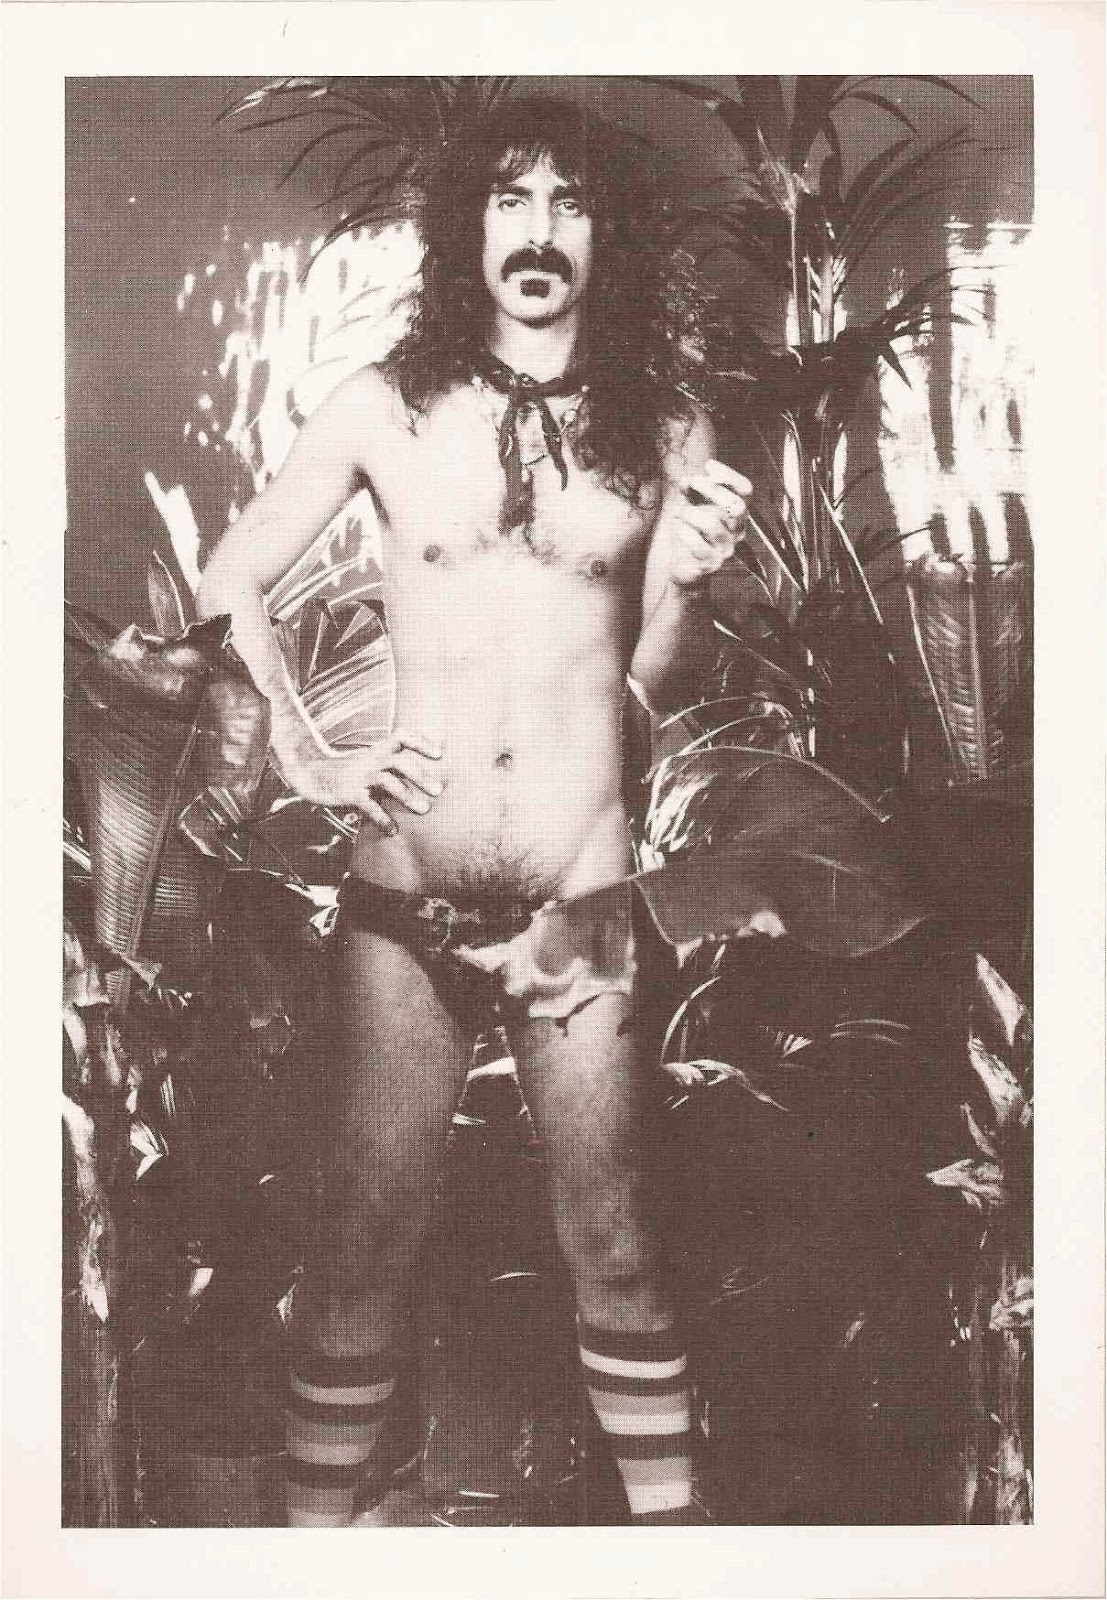 zappa Rock Stars in their Underpants may be the most important book ever published